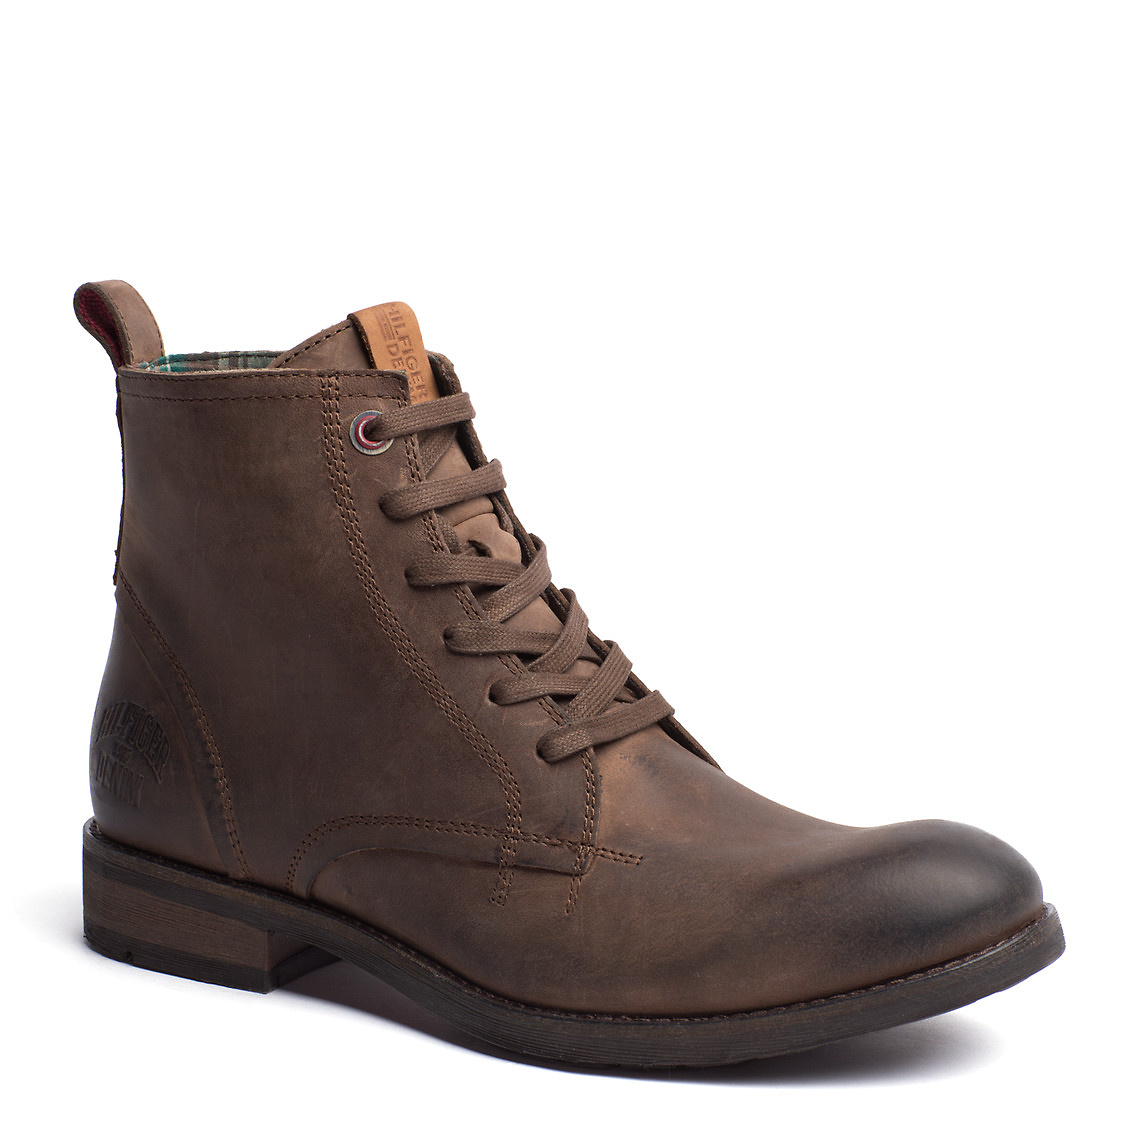 tommy hilfiger darren boot in brown for men dark taupe. Black Bedroom Furniture Sets. Home Design Ideas